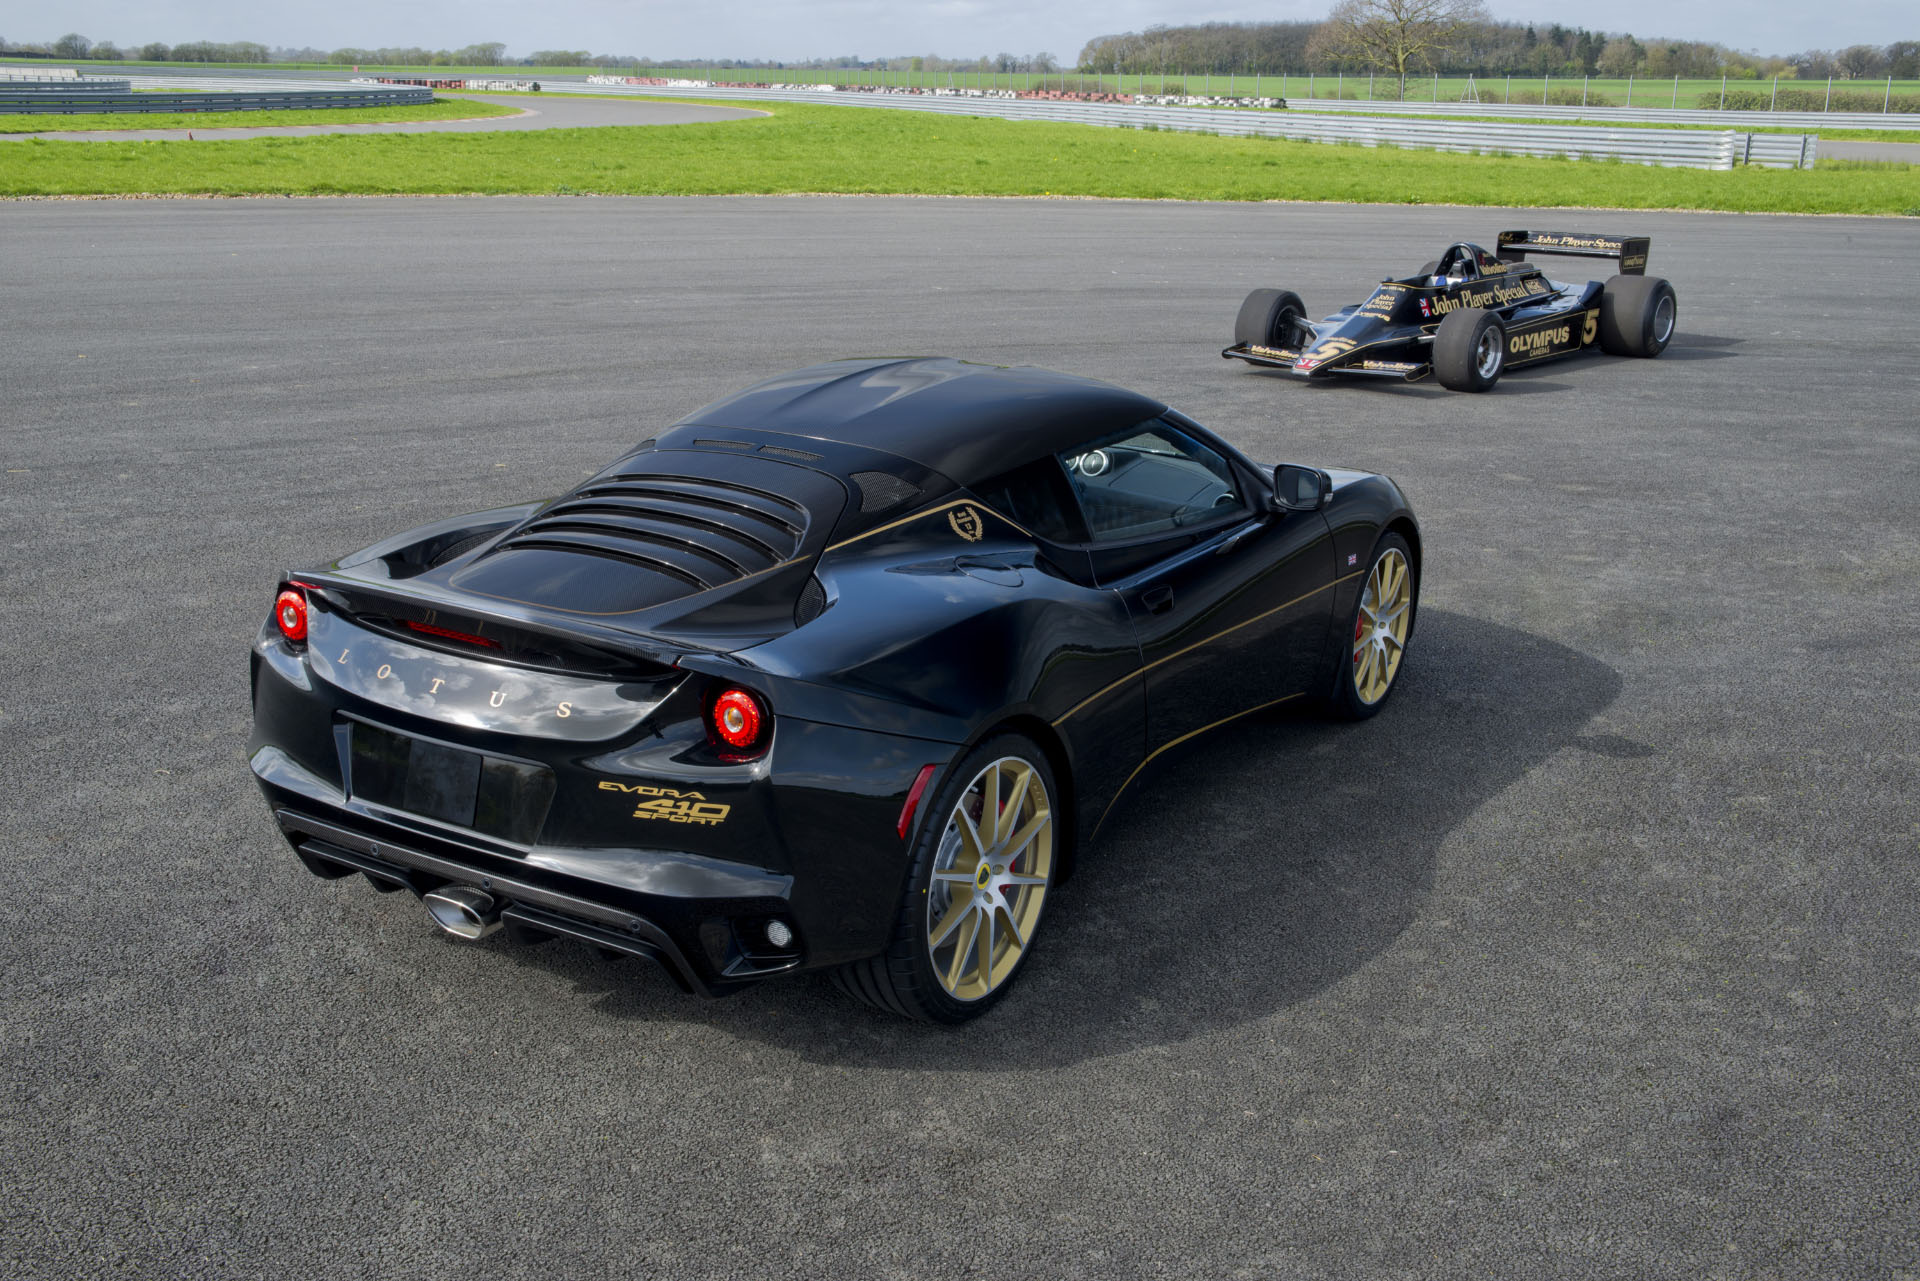 Lotus Evora Sport 410 GP Edition (2)